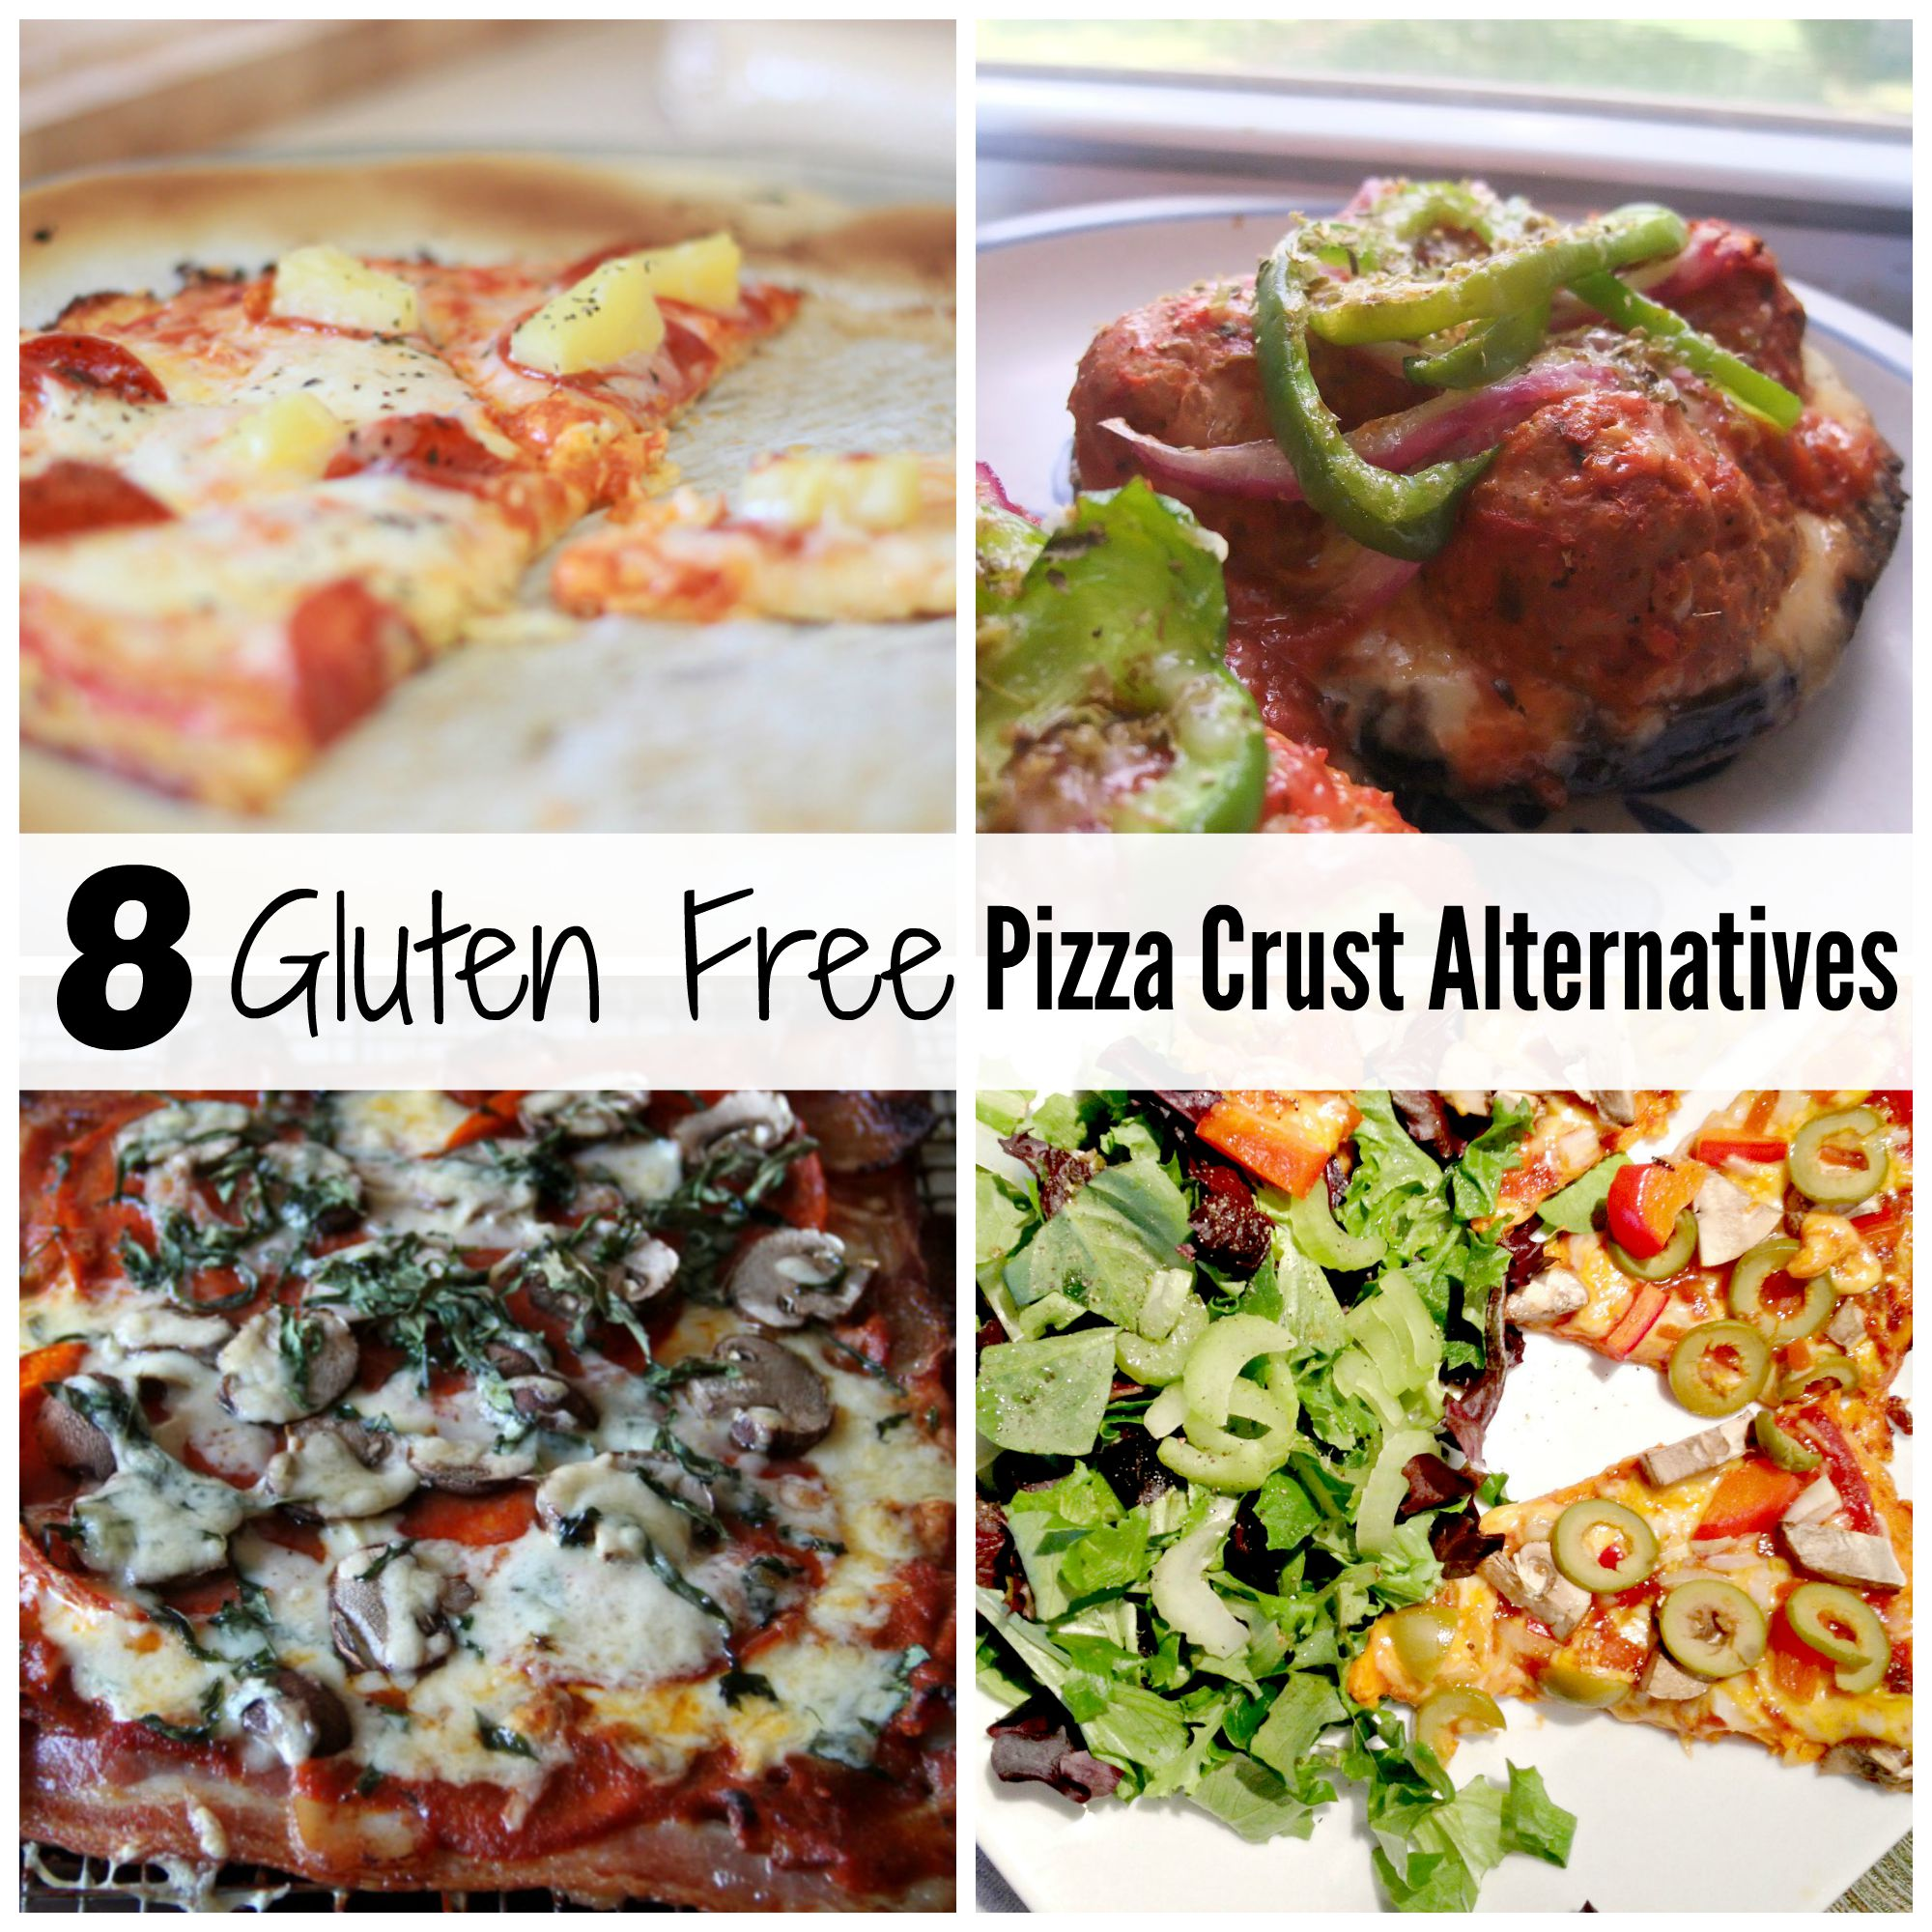 Gluten Free Pizza Crust Alternatives - Creative Sides